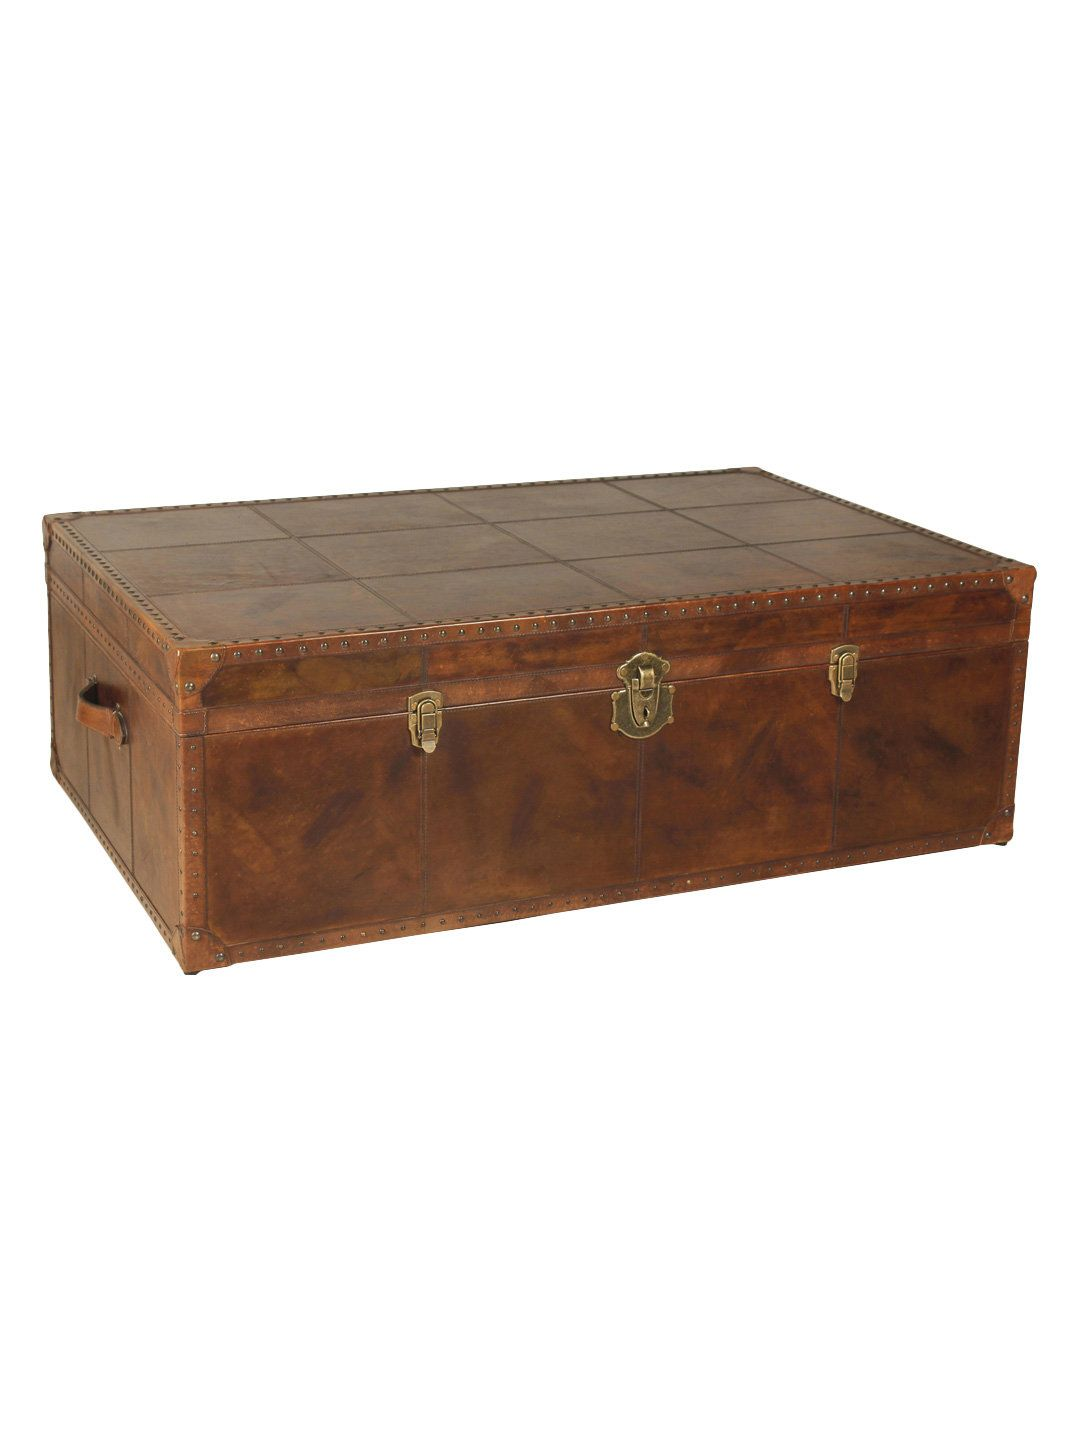 Coffee Table Trunk By Sarreid At Gilt With Images Coffee Table Trunk Leather Trunk Coffee Table Living Room Coffee Table